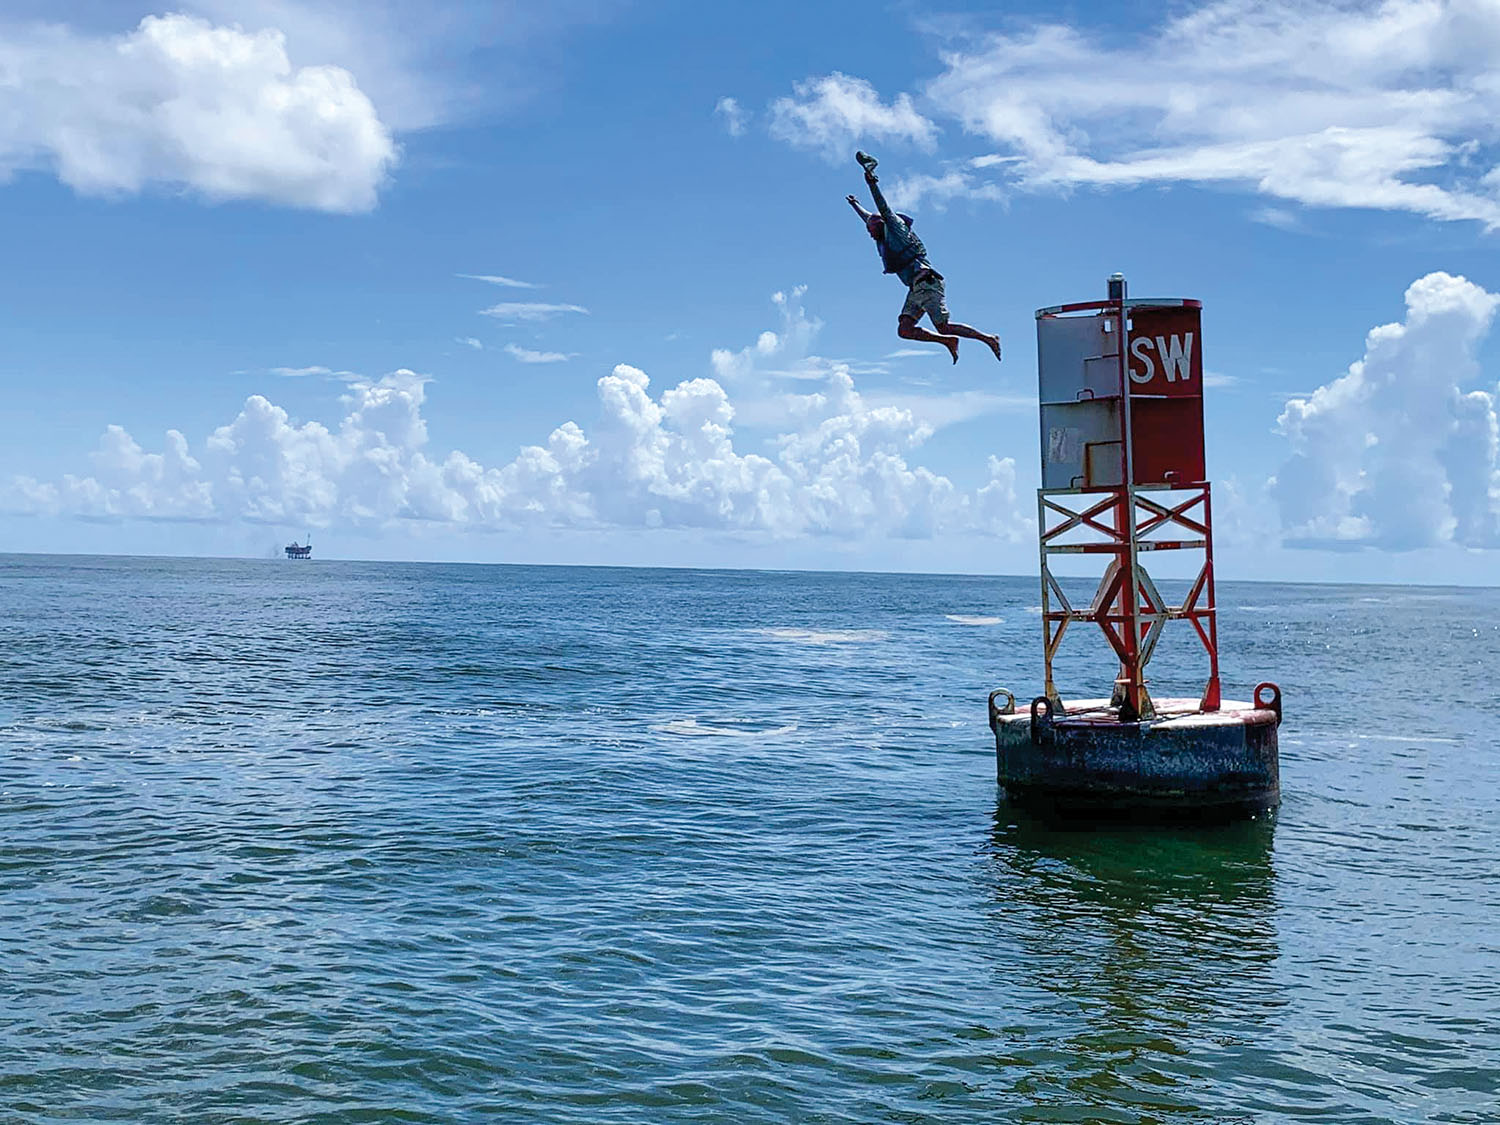 Joey Cargol finished his journey with a leap from the sea buoy that marks the end of the river. (Photo courtesy of Joey Cargol)